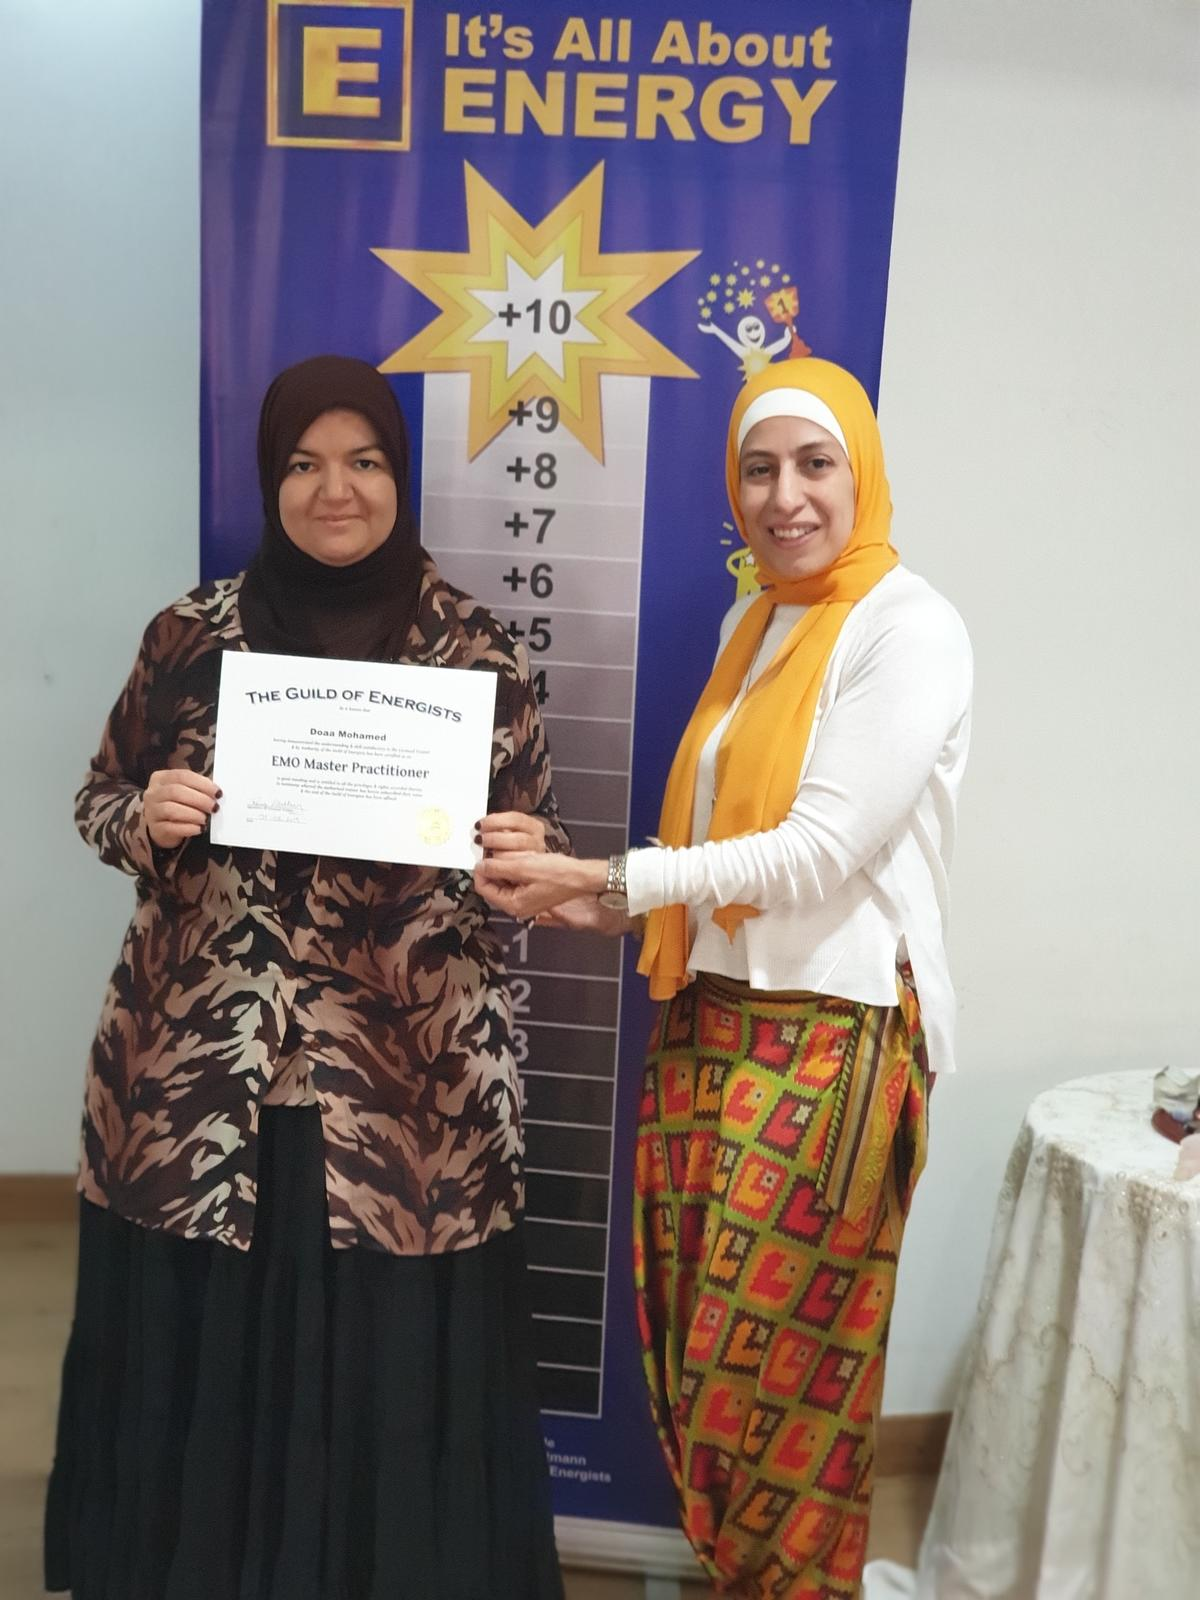 EMO Master Practitioner with Rania El Tahtawy